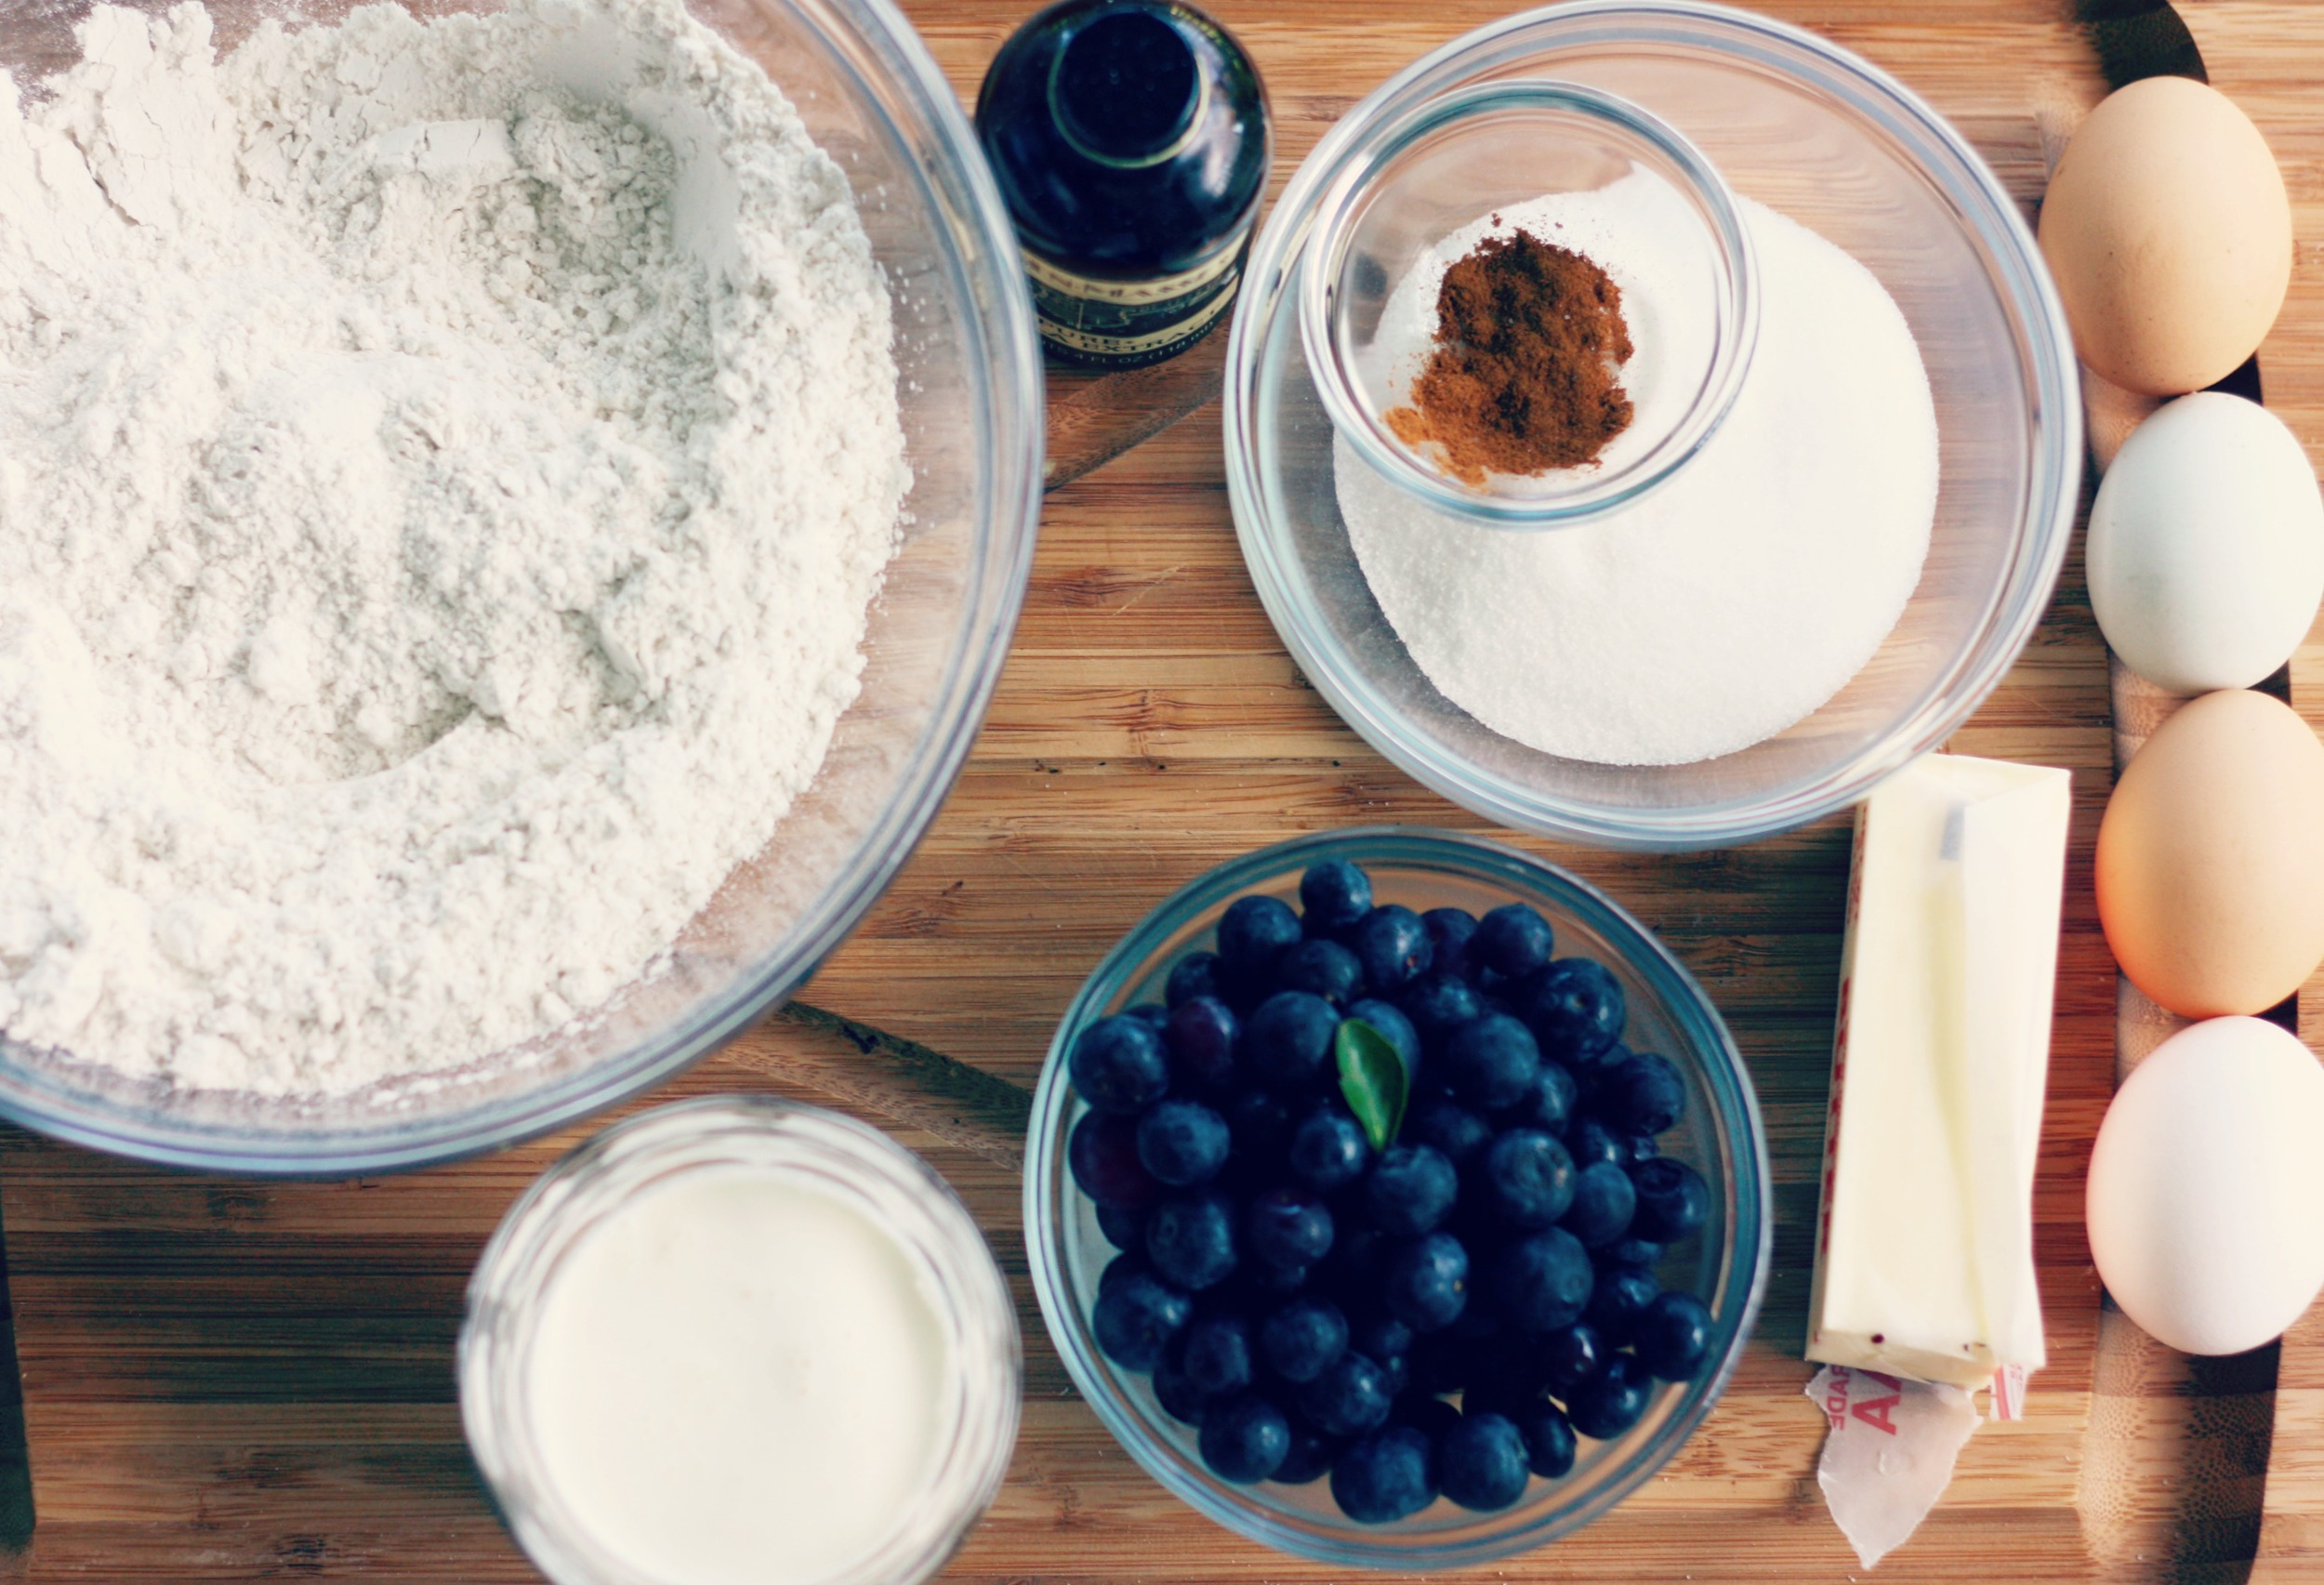 Ingredients for homemade blueberry and cinnamon scones | The Gallivant